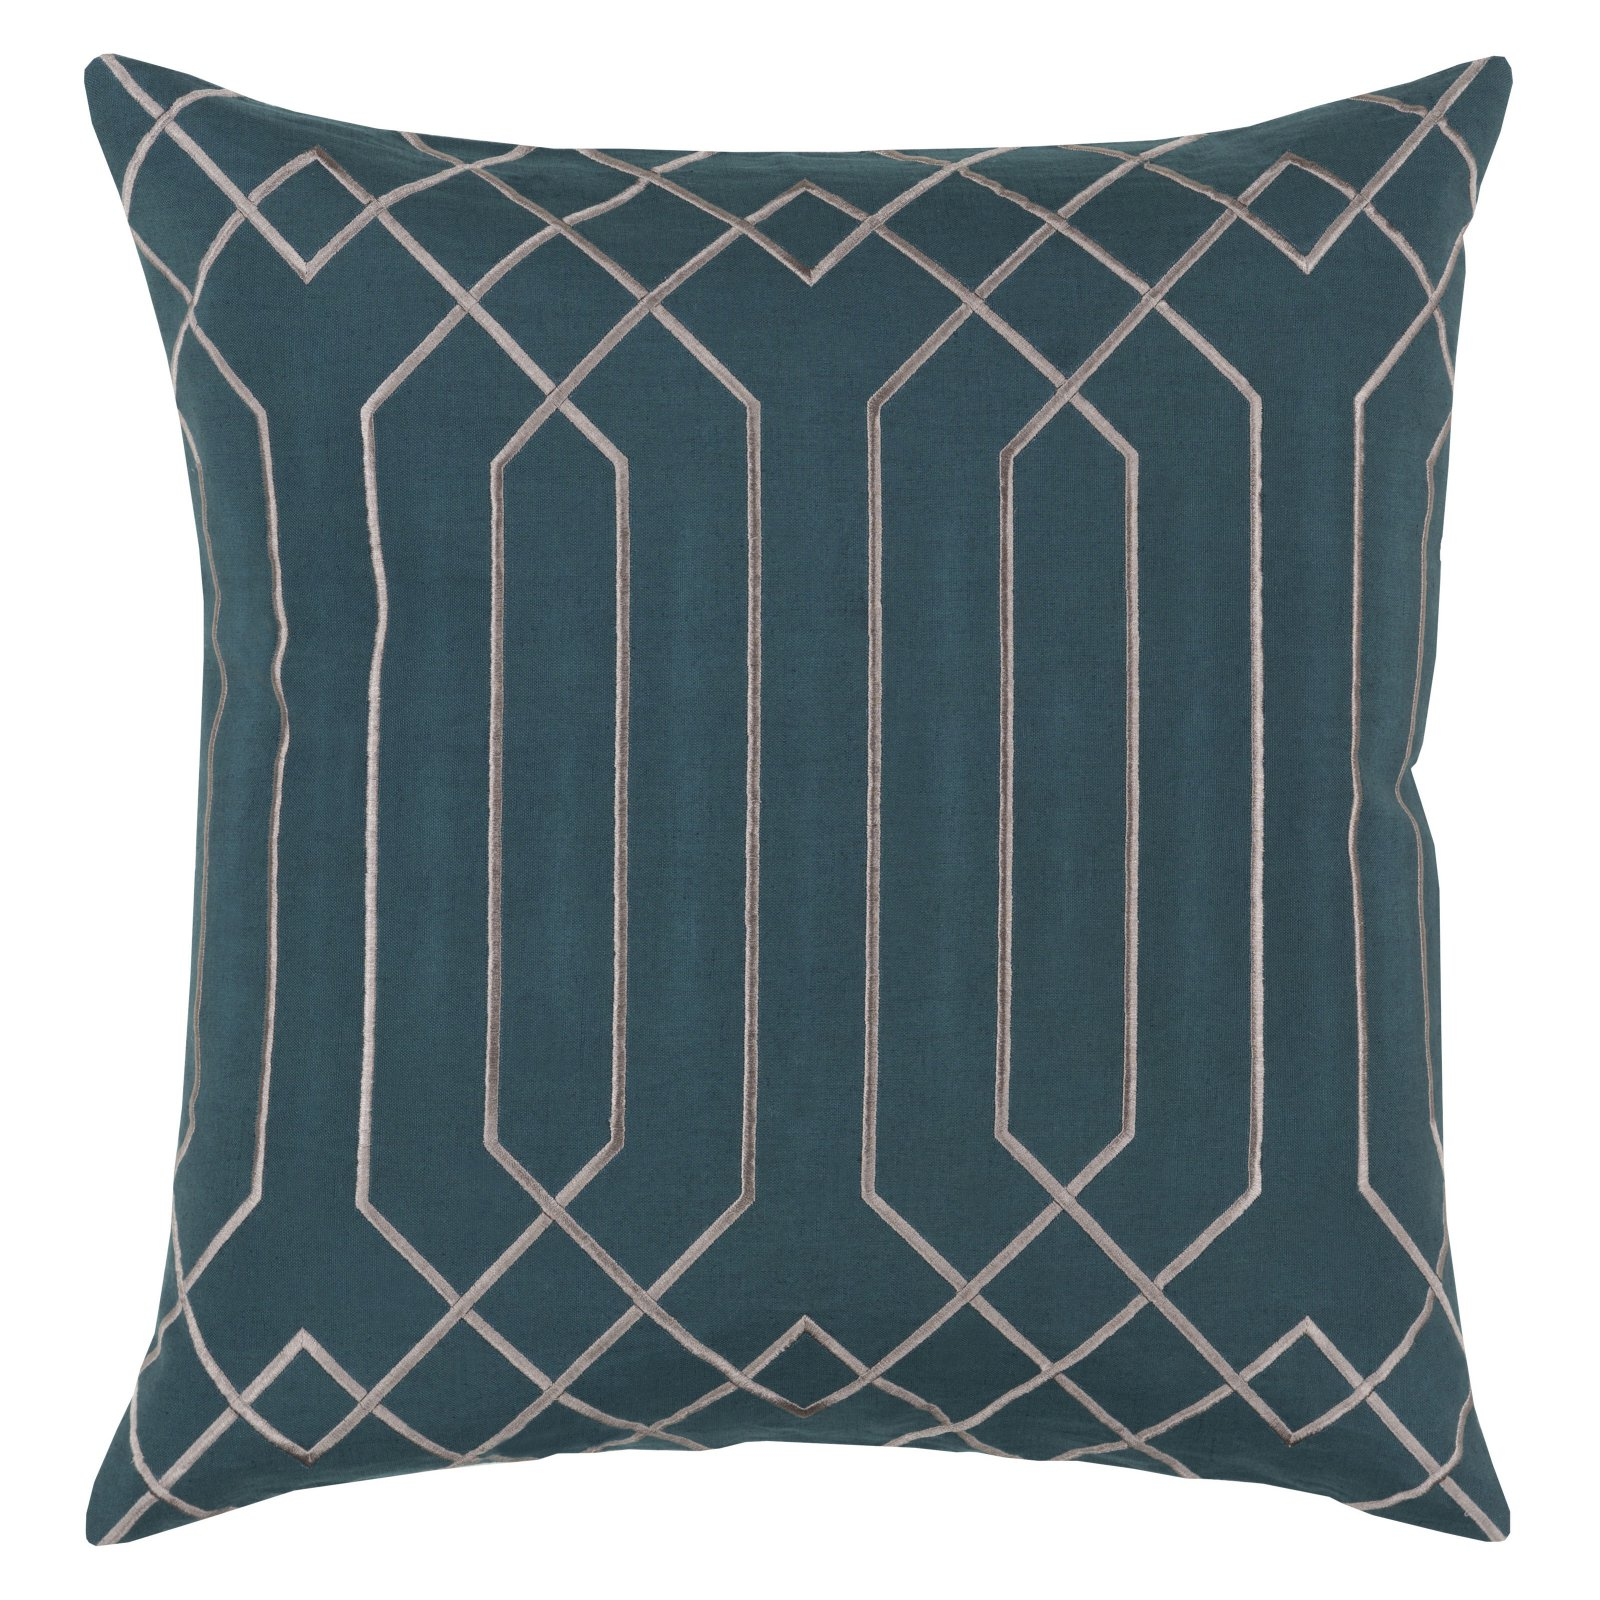 Surya Skyline III Decorative Throw Pillow